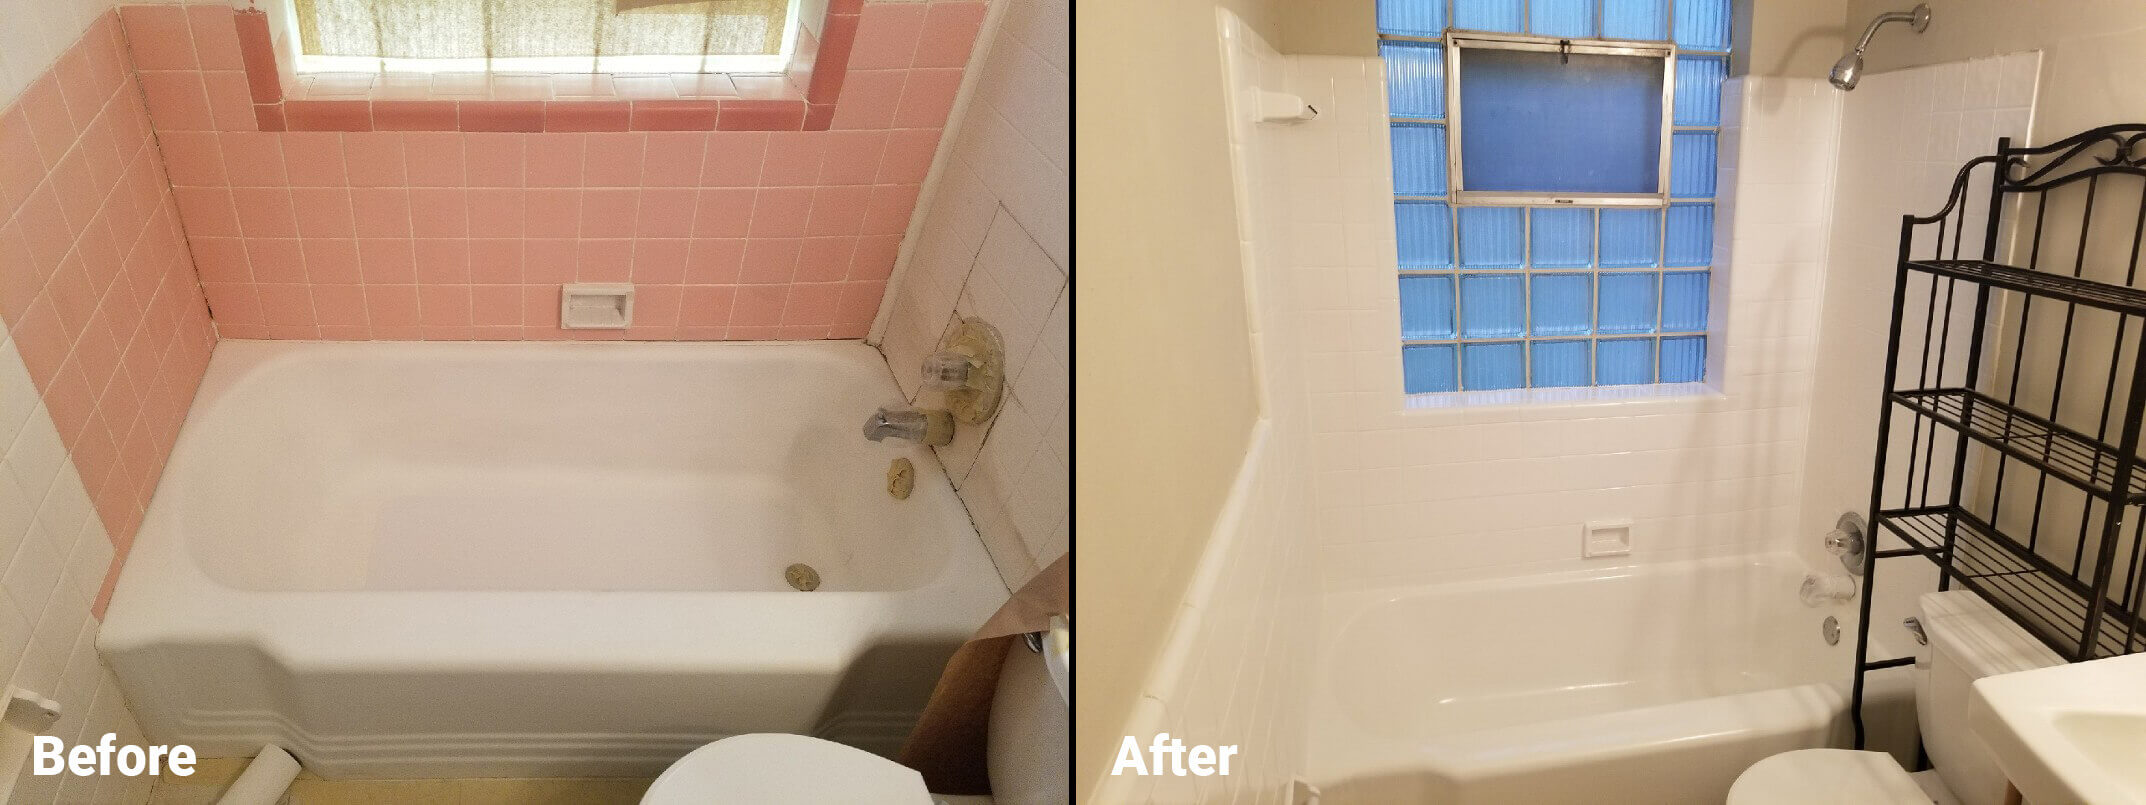 Bathtub Refinishing Before and After